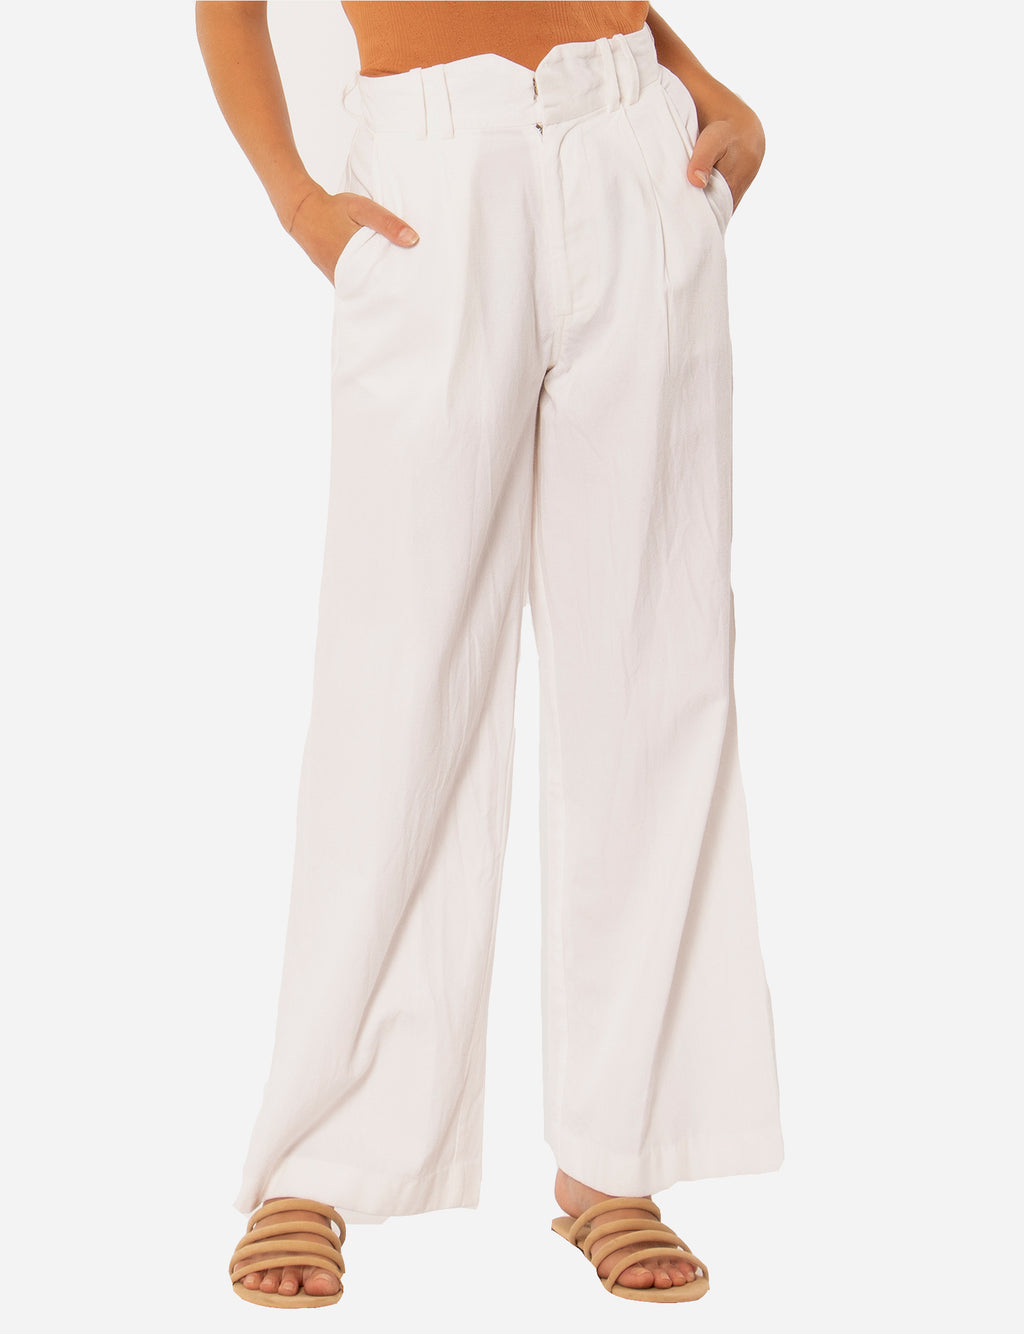 Angelica Woven Pant in White